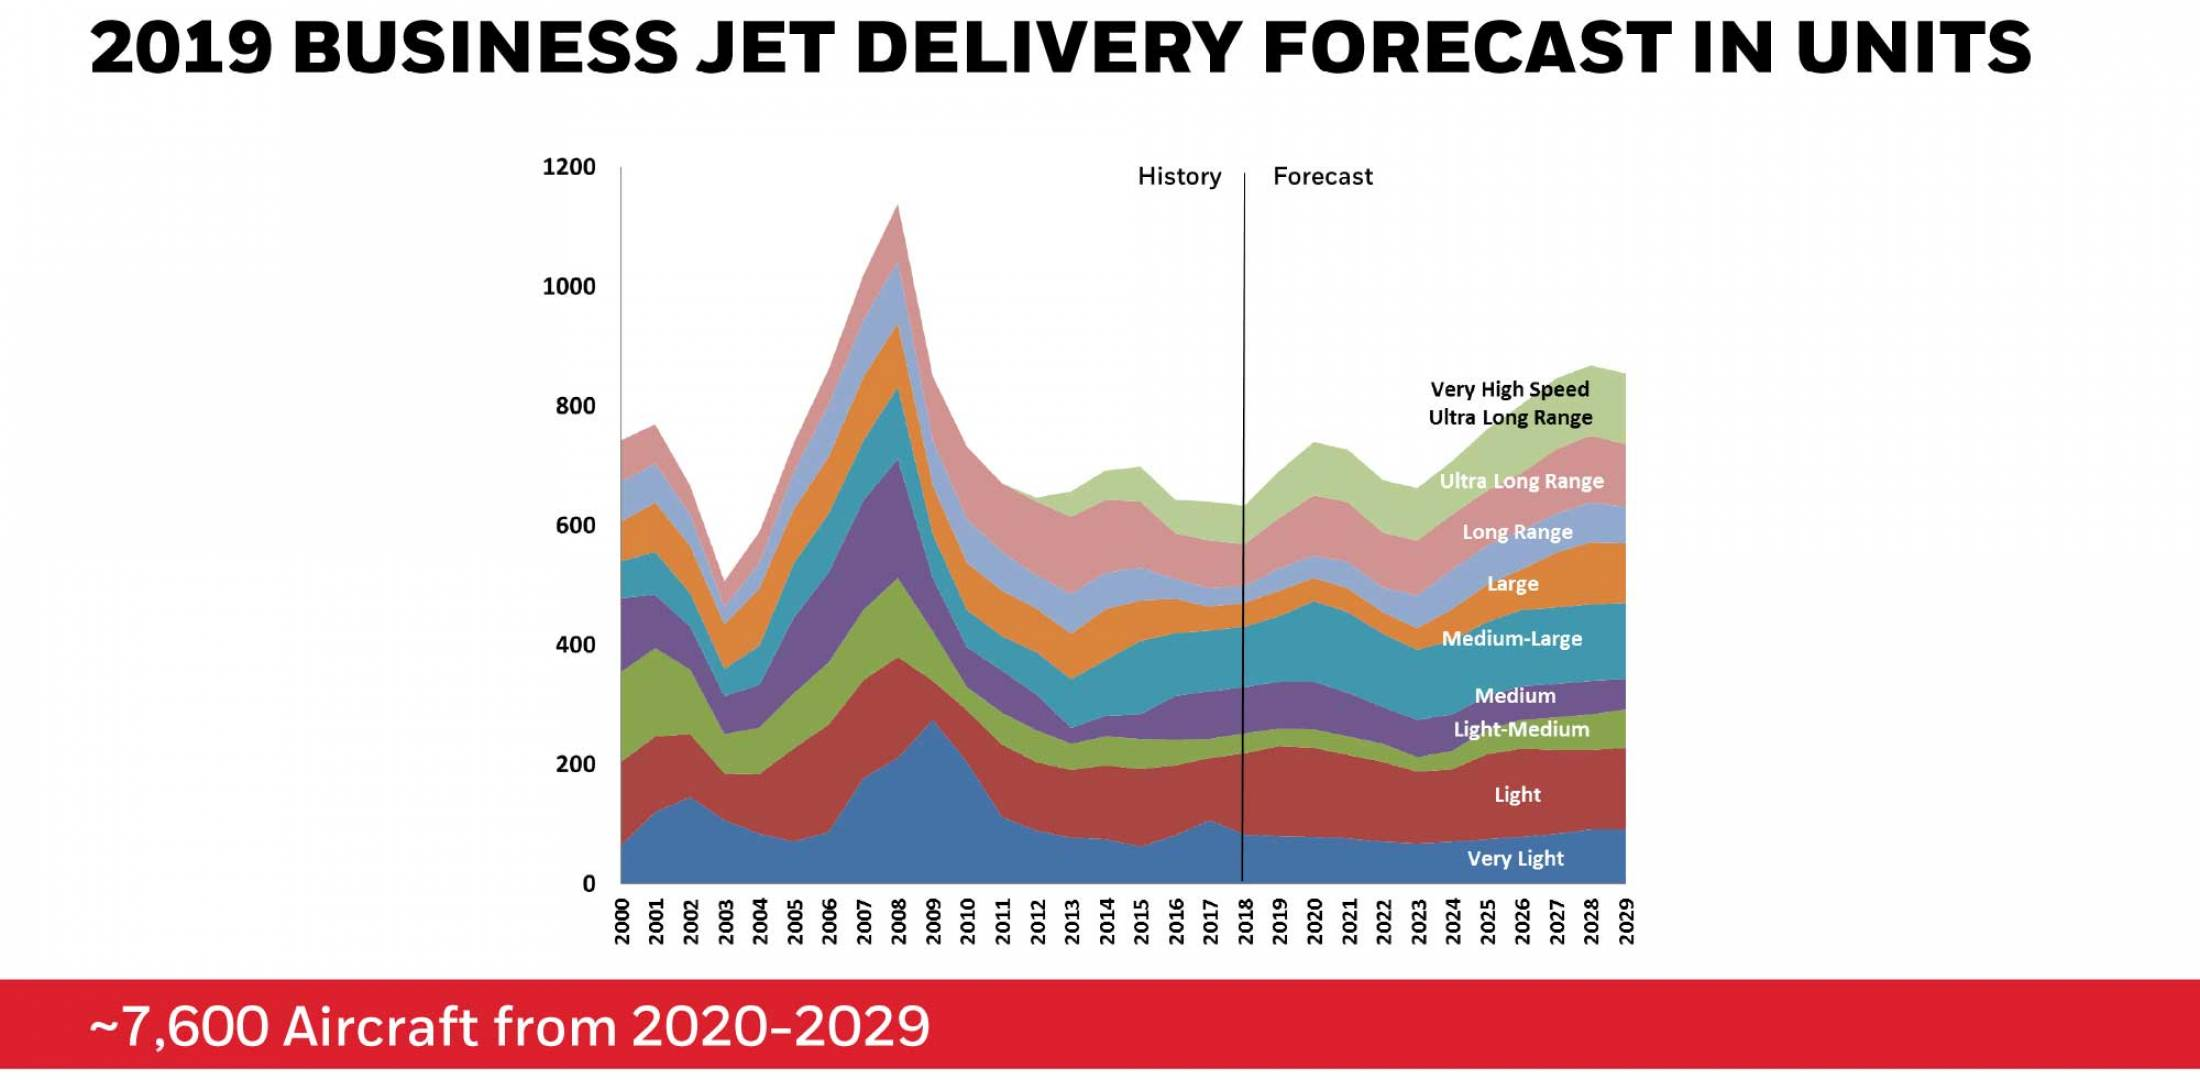 Honeywell Business Jet Delivery Forecast